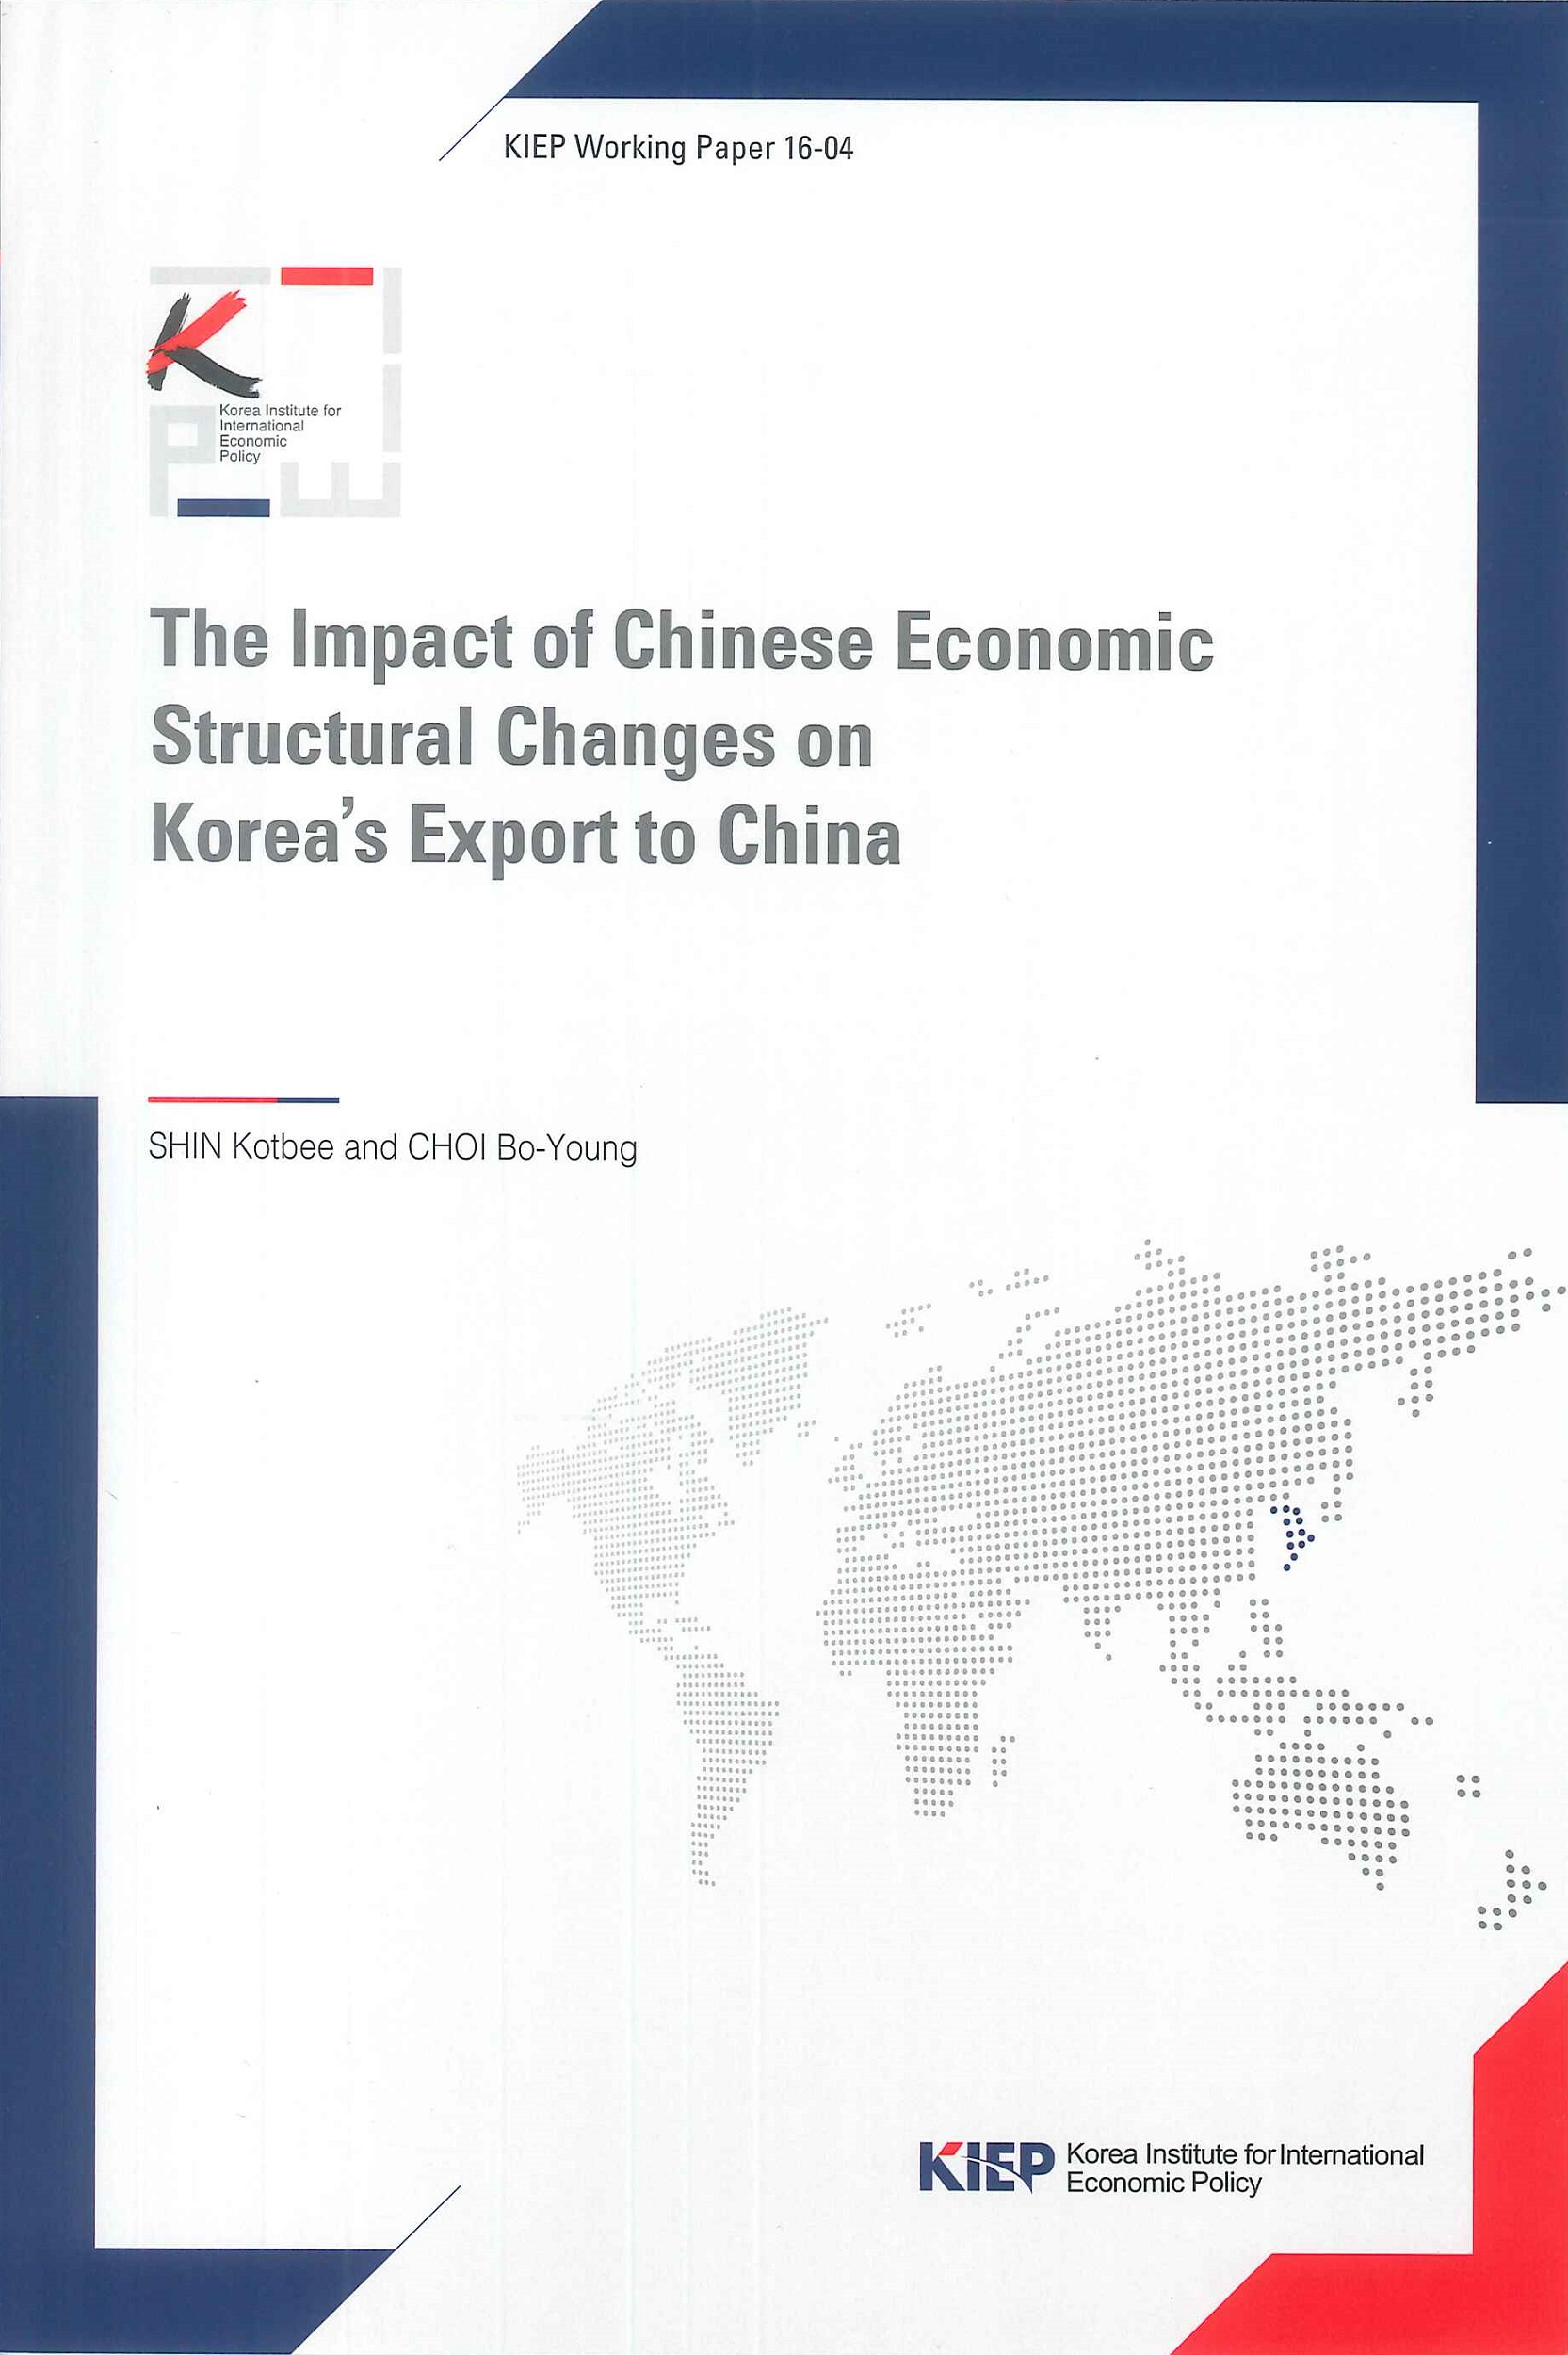 The impact of Chinese economic structural changes on Korea